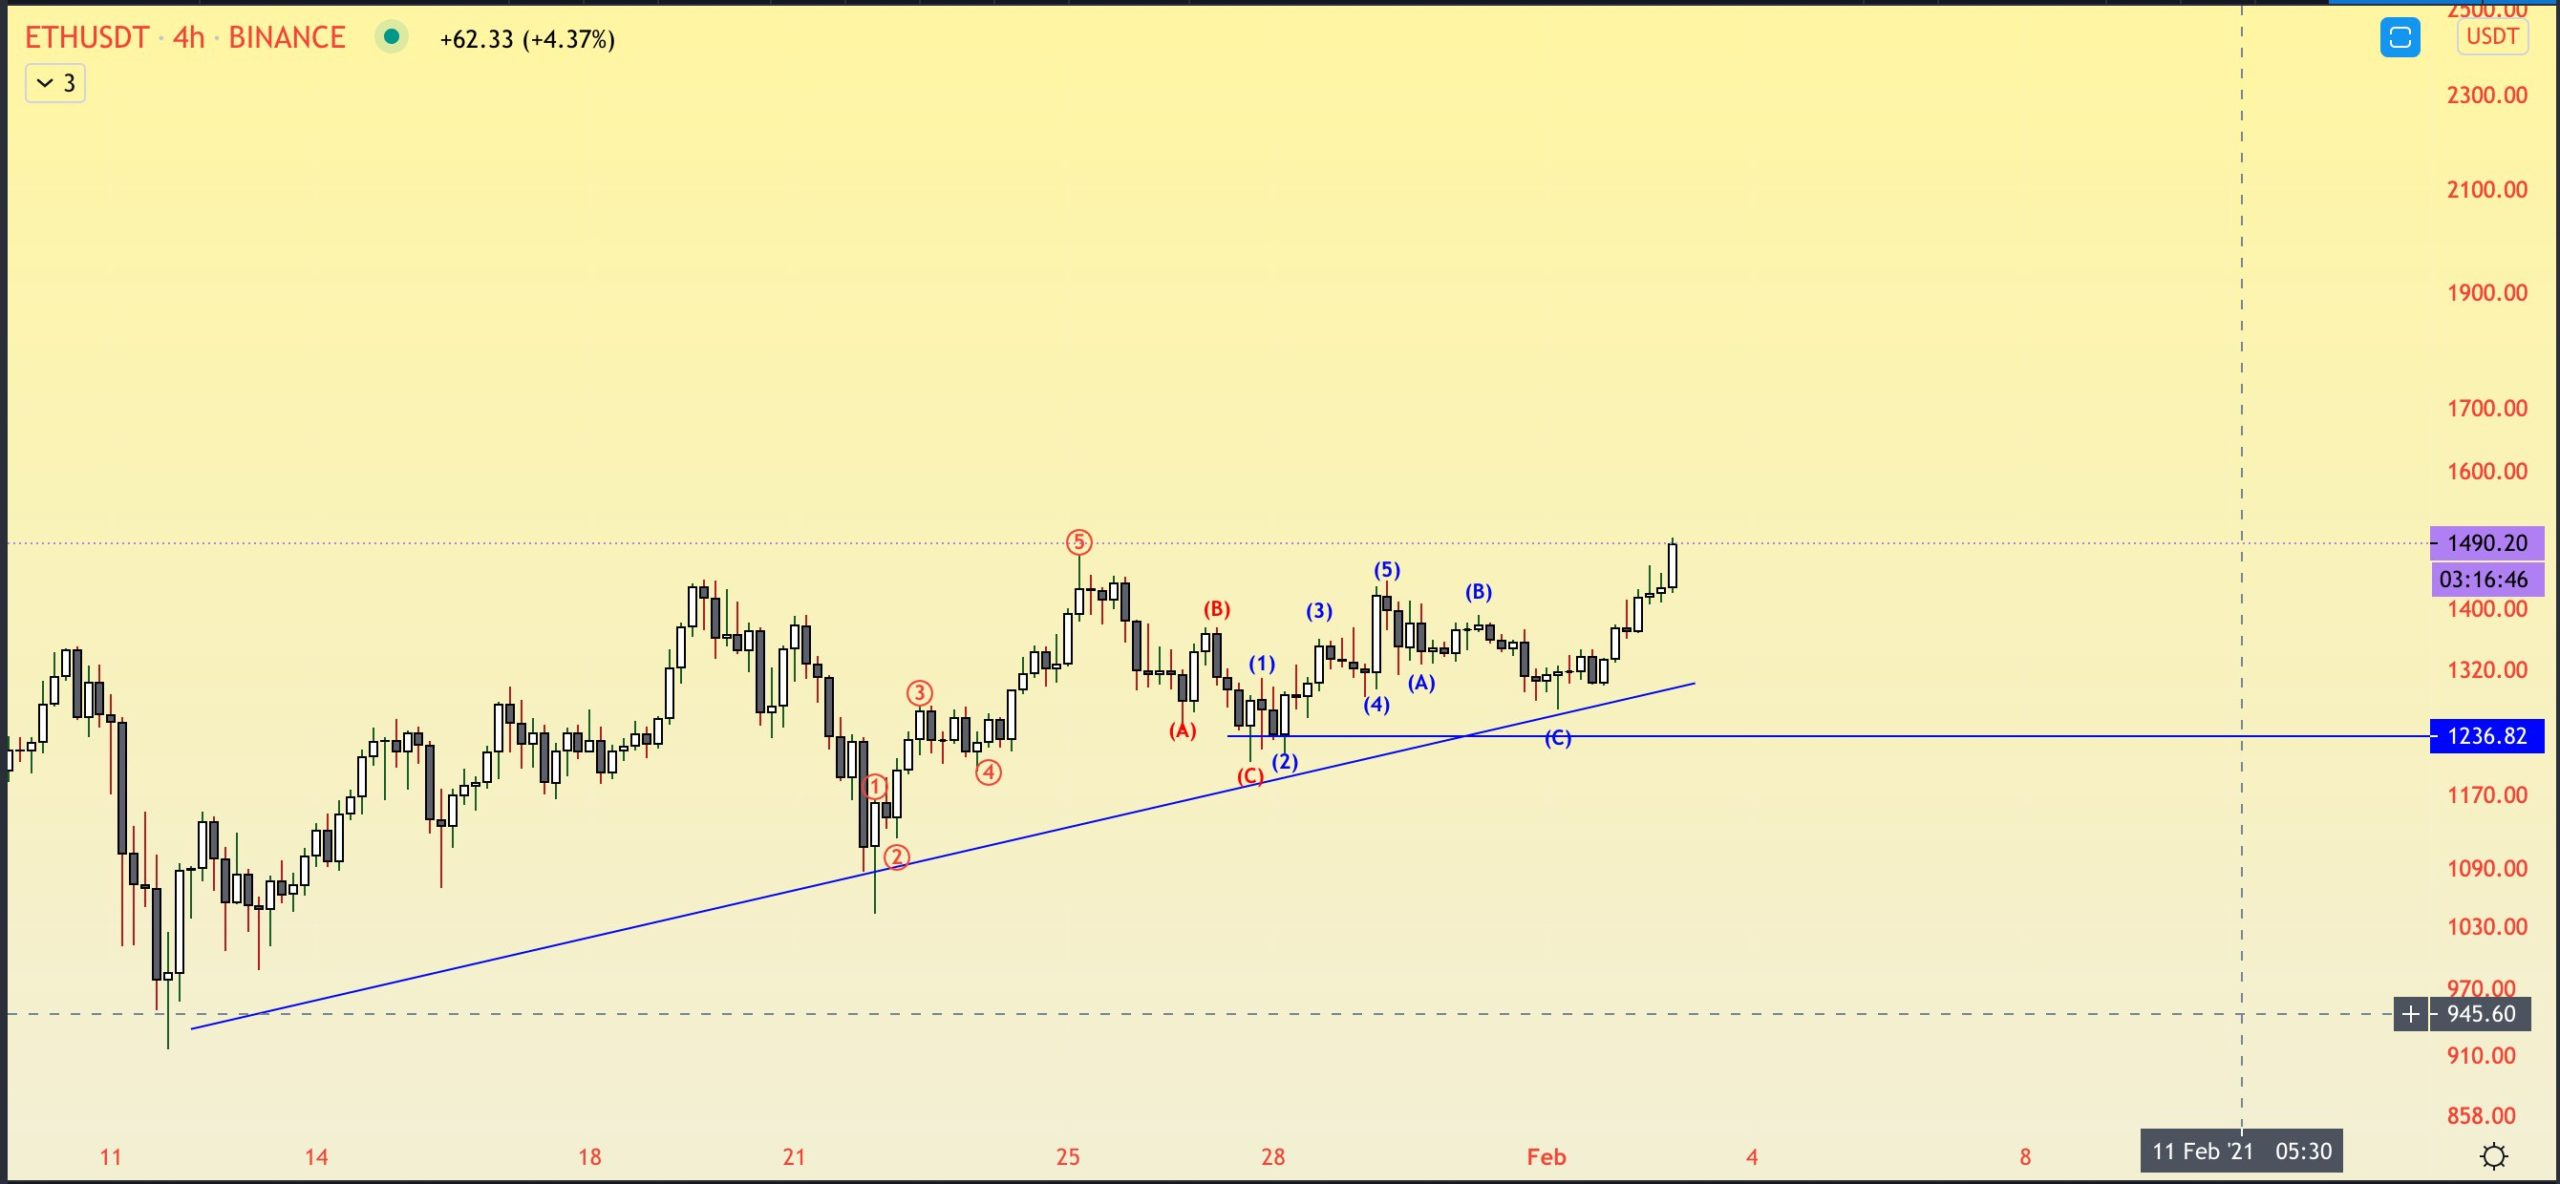 ETH Wave Count